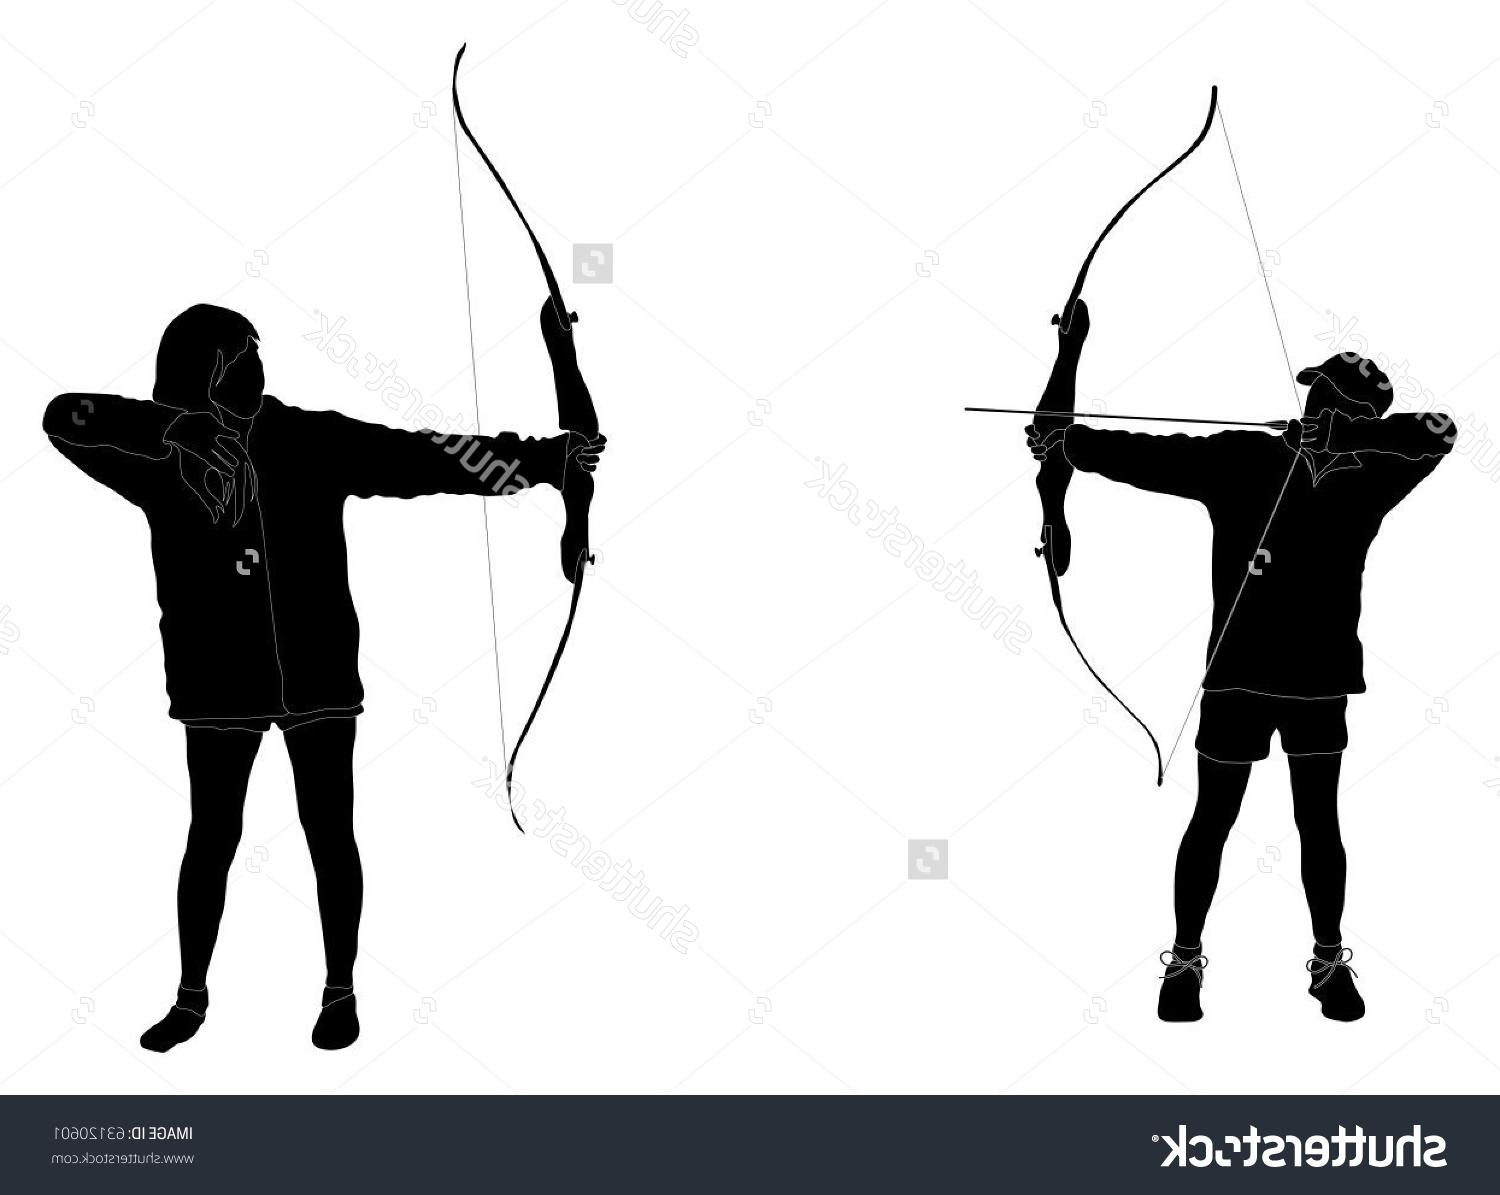 Top 10 Stock Vector Archery Silhouettes Images.